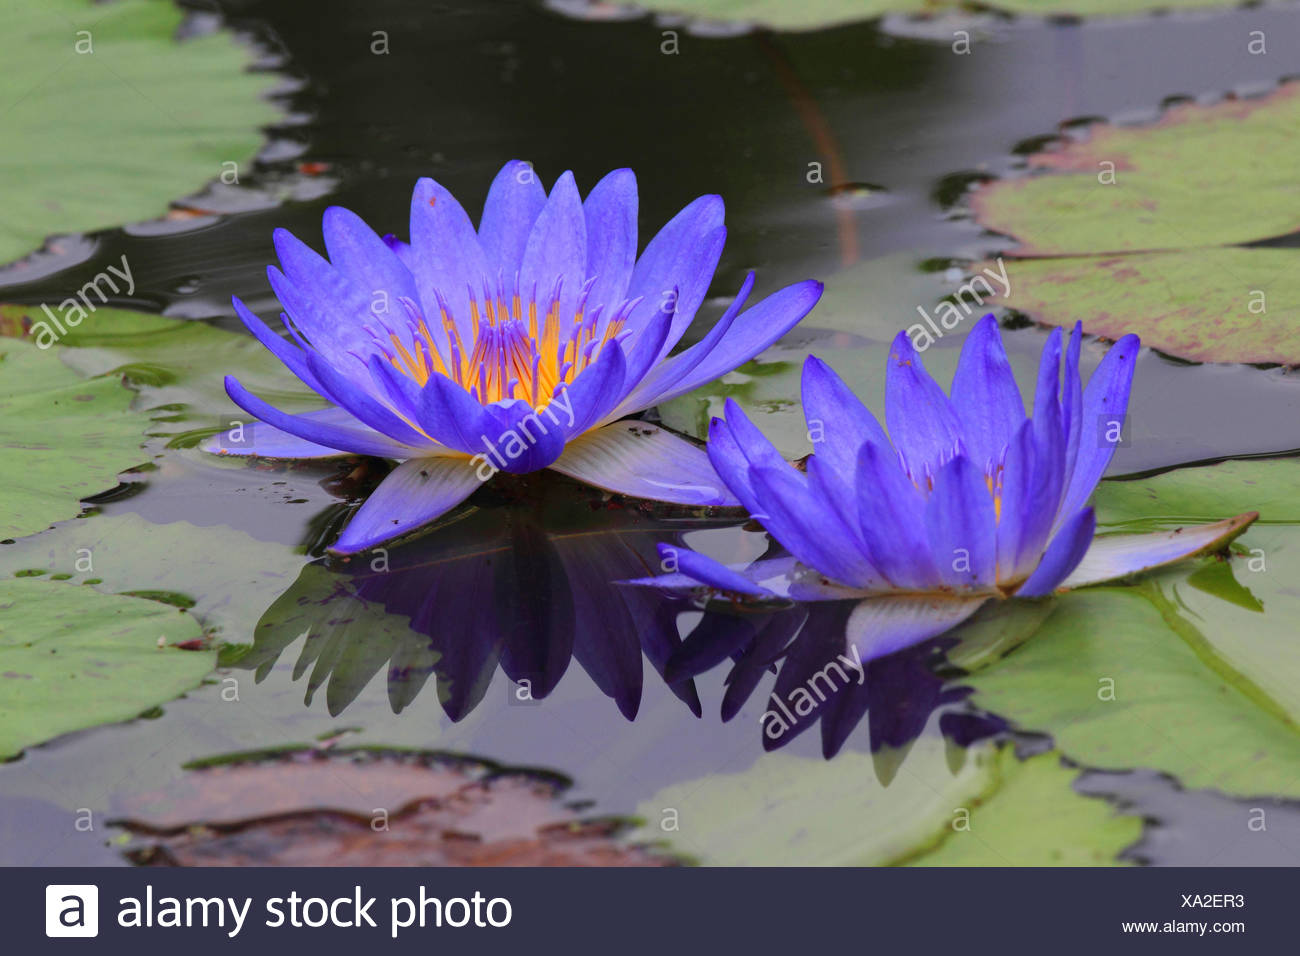 Water Lily Pond Lily Nymphaea Spec With Blue Flowers Stock